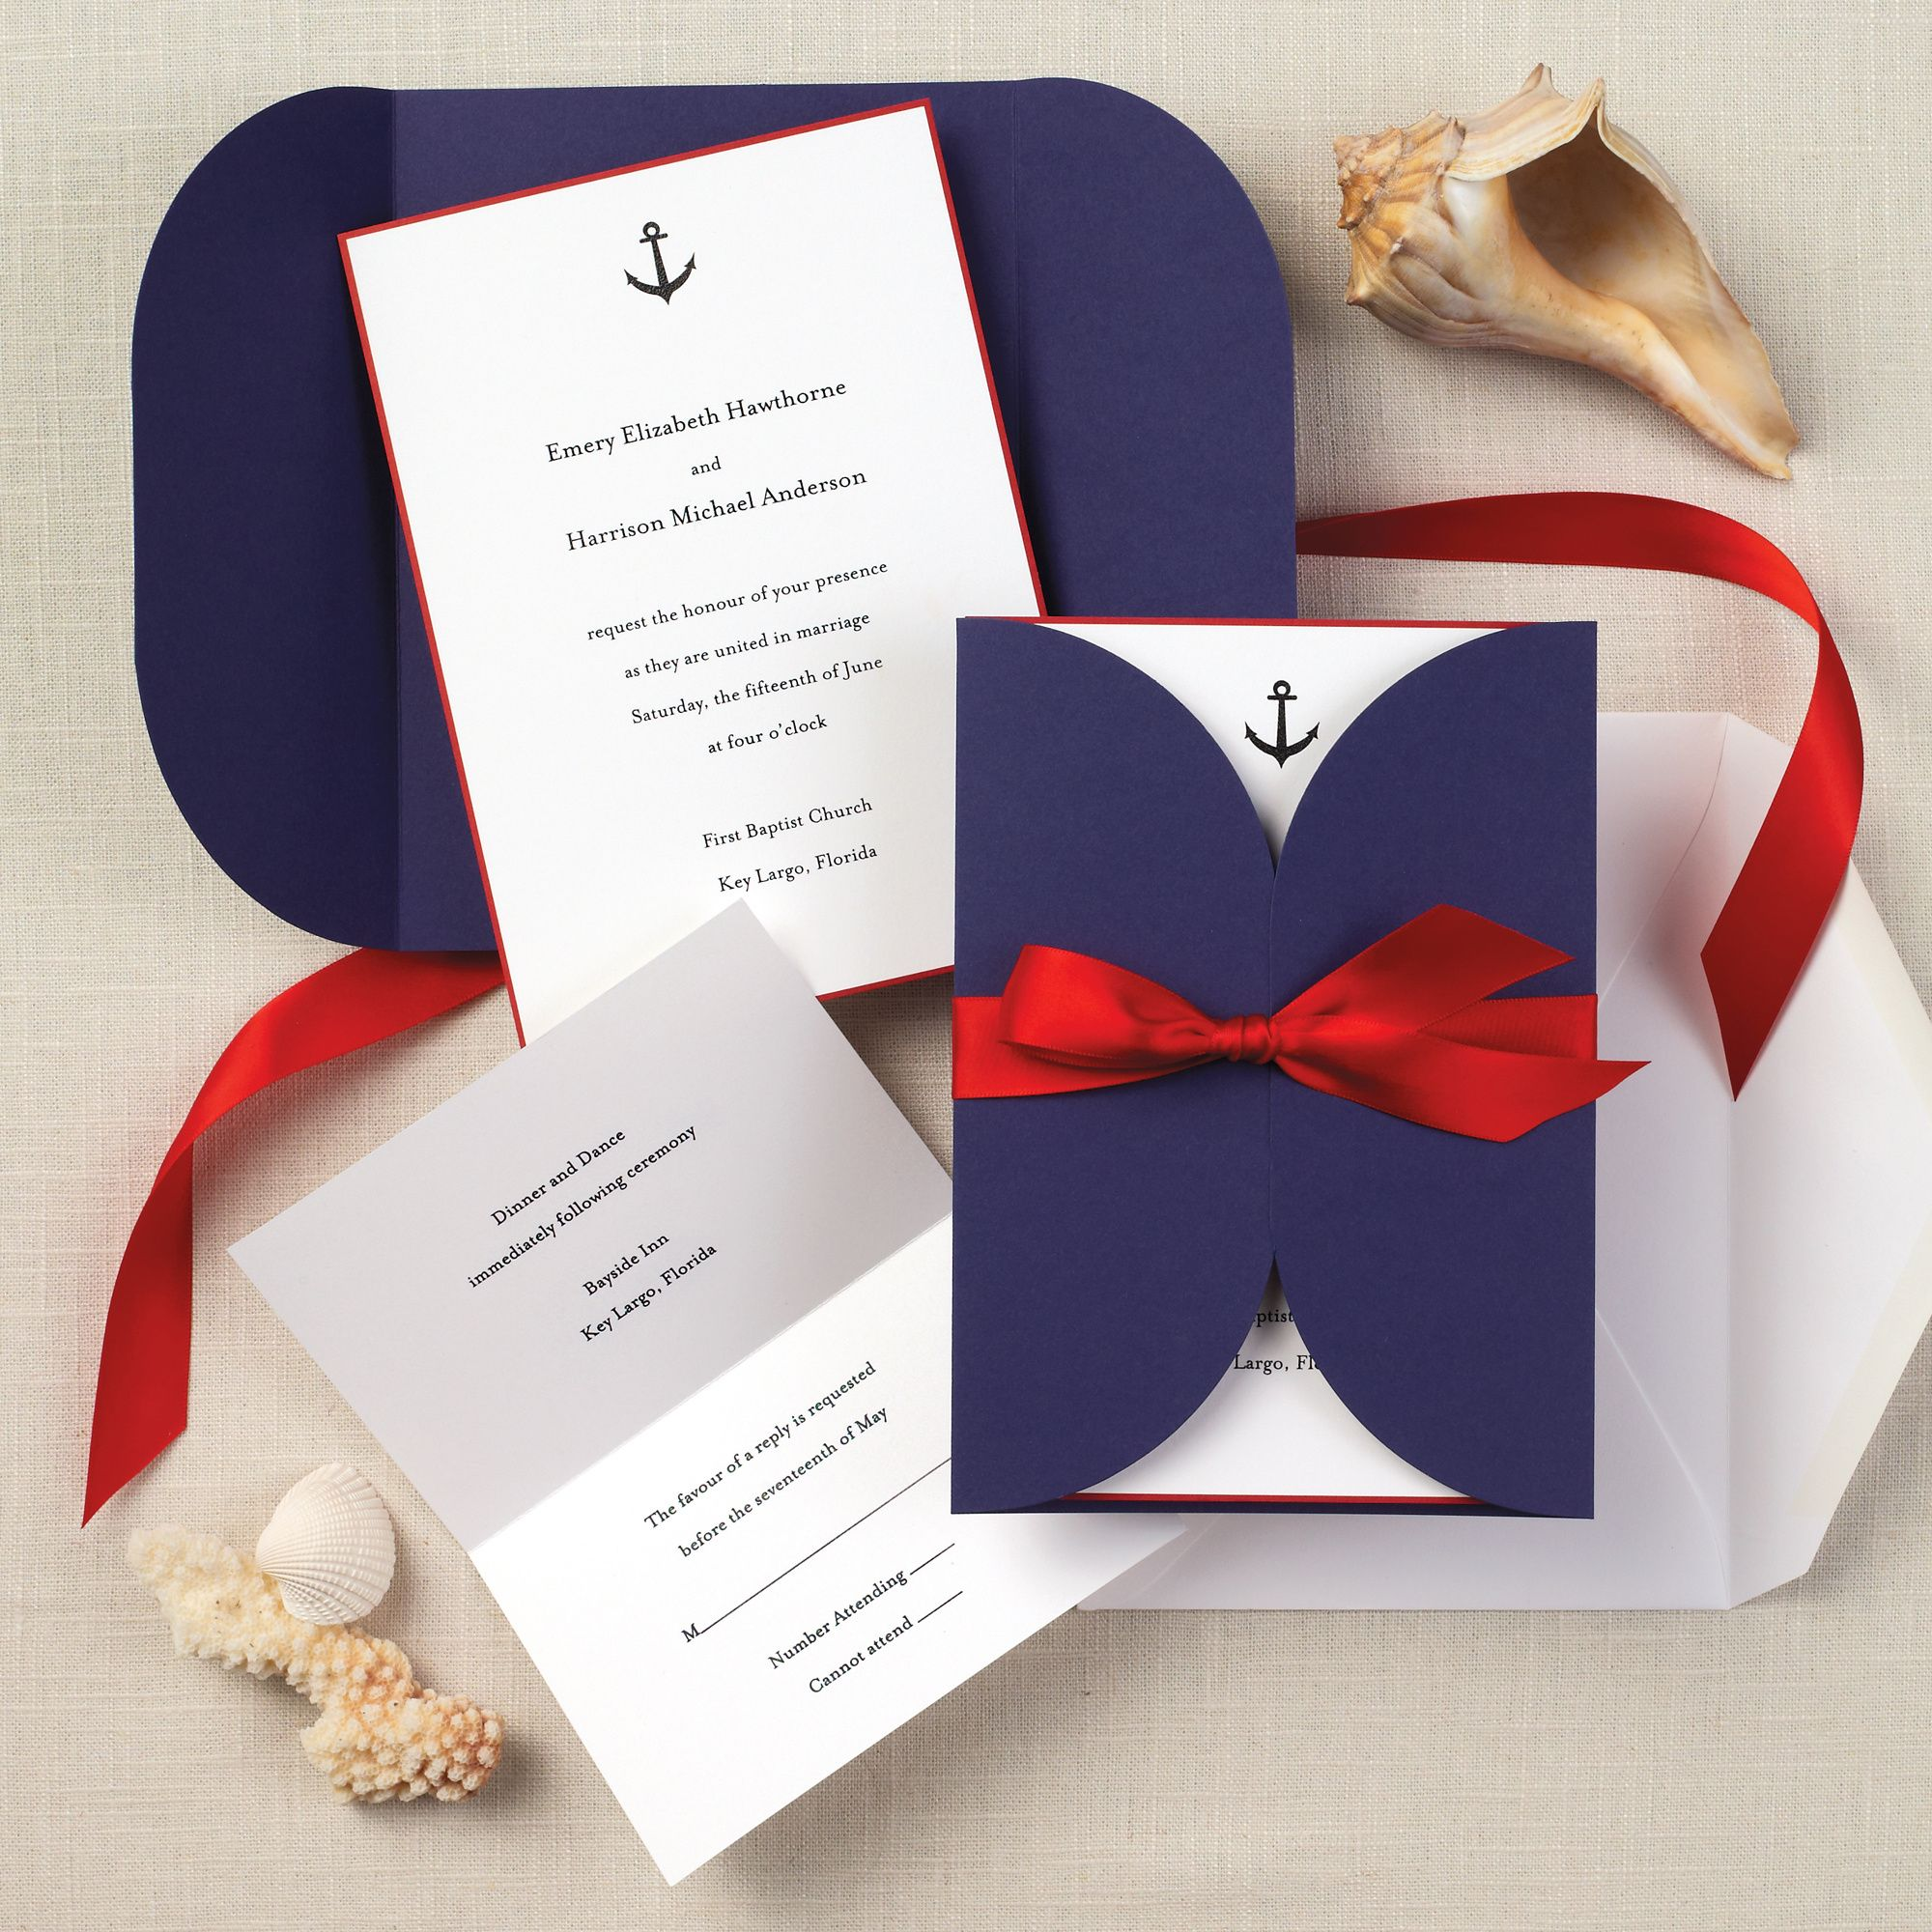 Exclusively Weddings Nautical Beauty Wedding Invitations Is A Destination Design Set Sail On Your Journey